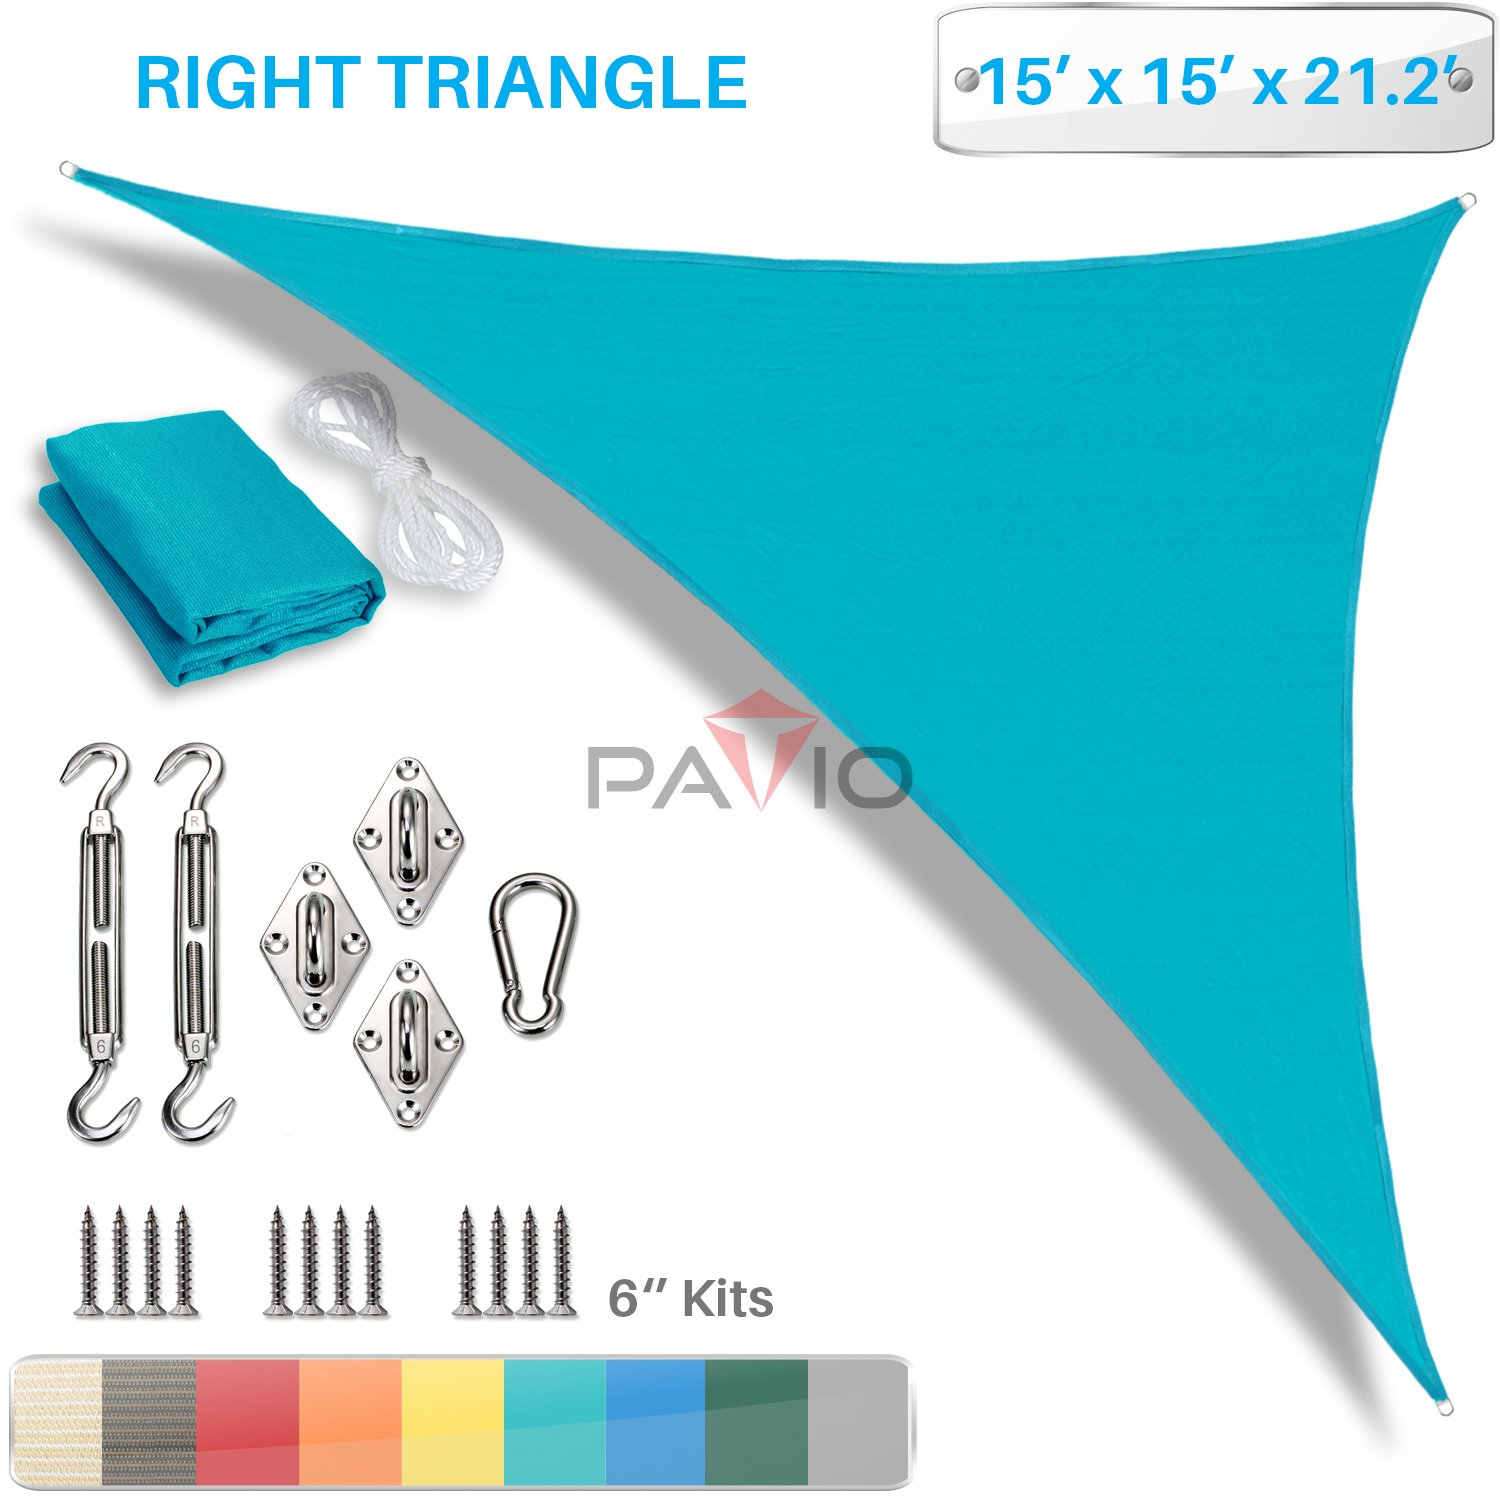 PATIO Paradise 15 x 15 x 21 Sun Shade Sail with 6 inch Hardware Kit, Turquoise Green Right Triangle Canopy Durable Shade Fabric Outdoor UV Shelter – 3 Year Warranty – Custom